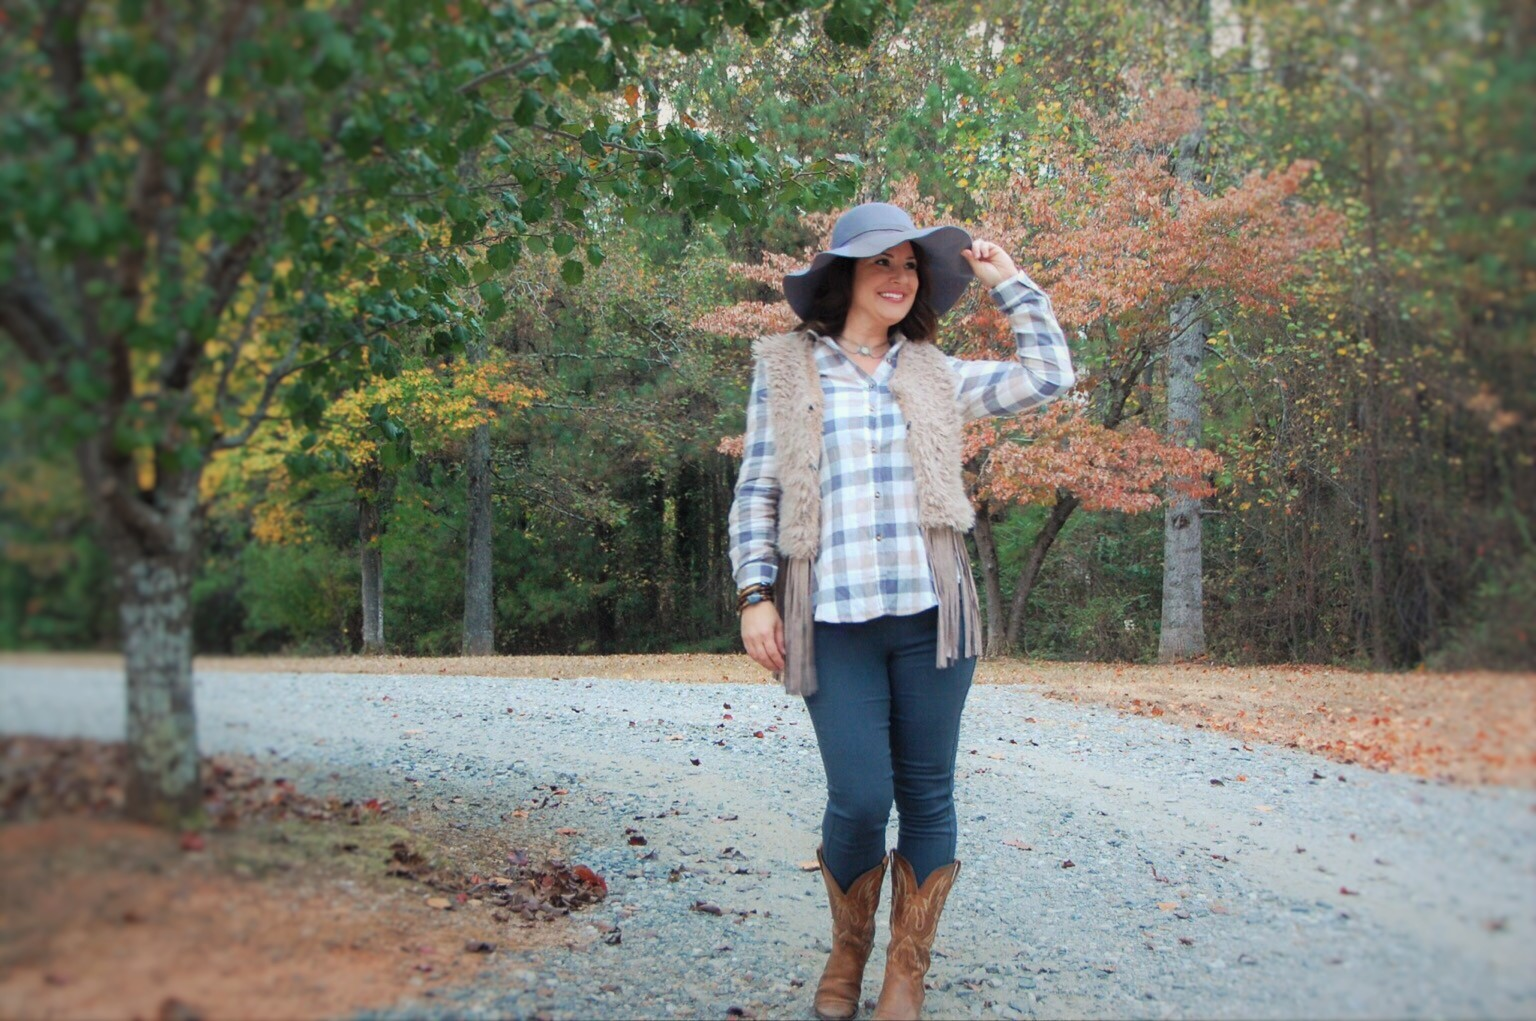 Kimberly Bishop from Crockpot Empire in a southern look by Honey Butter Boutique. A shearling fringe vest, plaid shirt, and cowboy boots